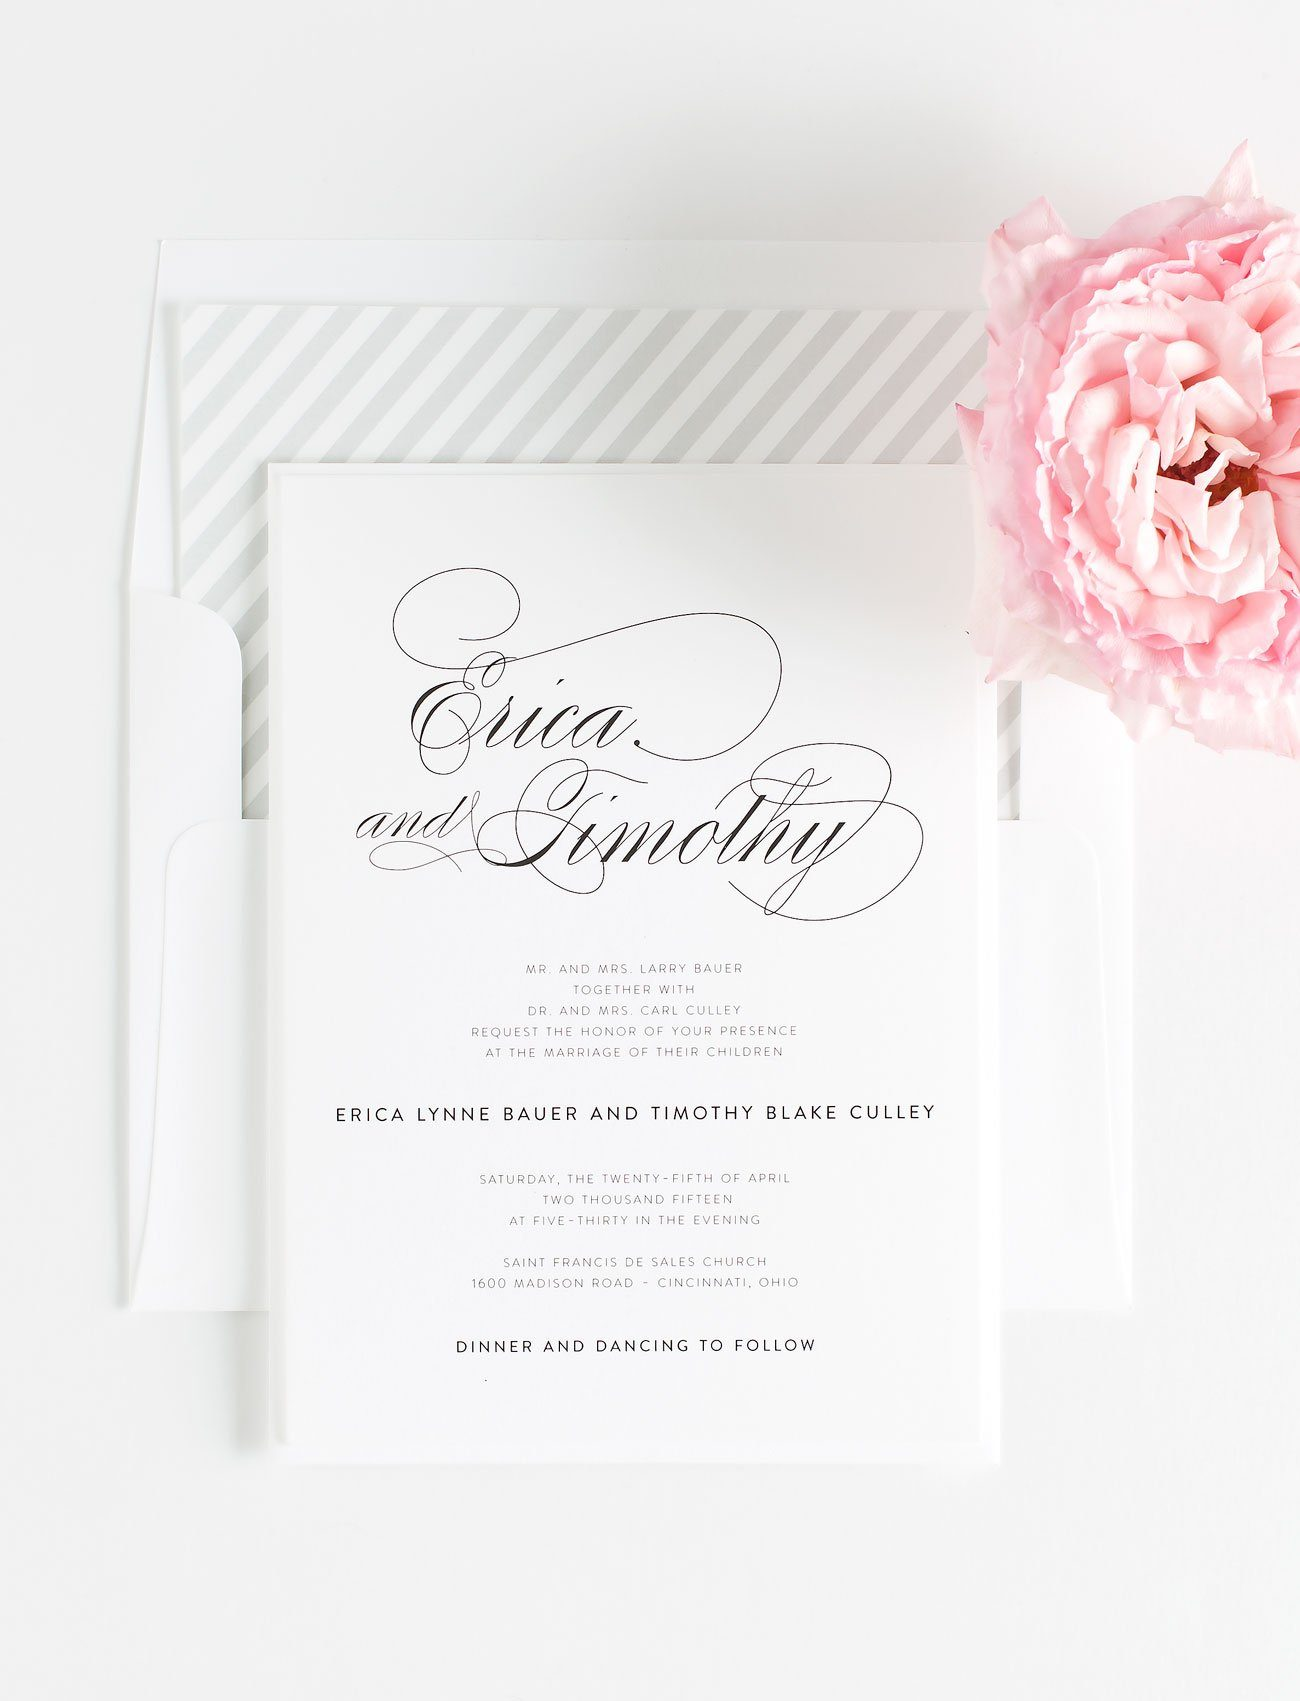 calligraphy wedding invitations with gray accents silver wedding invitations - Silver Wedding Invitations